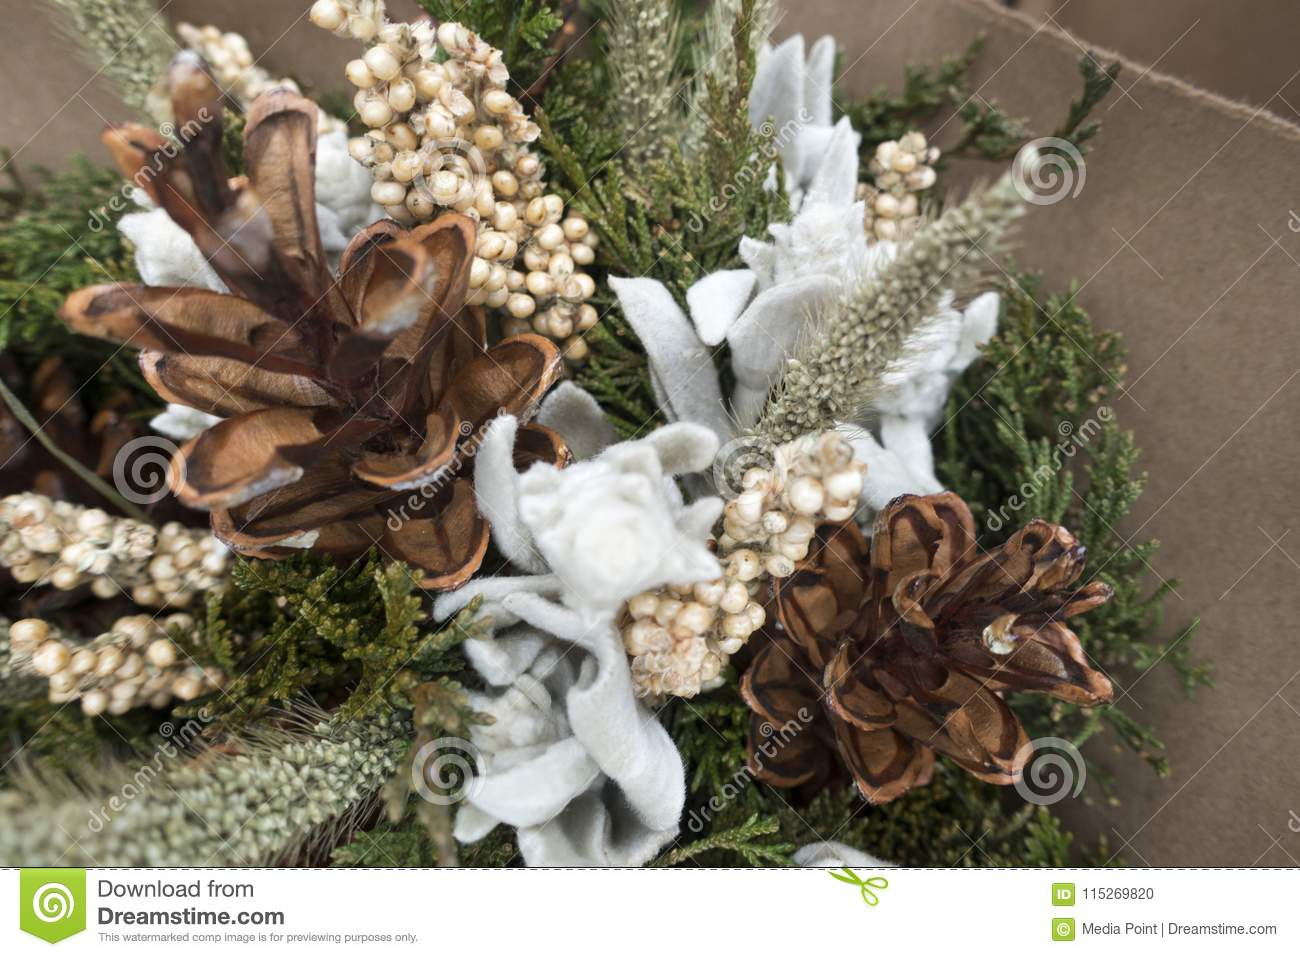 Rustic Winter Christmas Dried Bokay Of Flowers With Pine Cones Stock Photo Image Of Flowers Dried 115269820